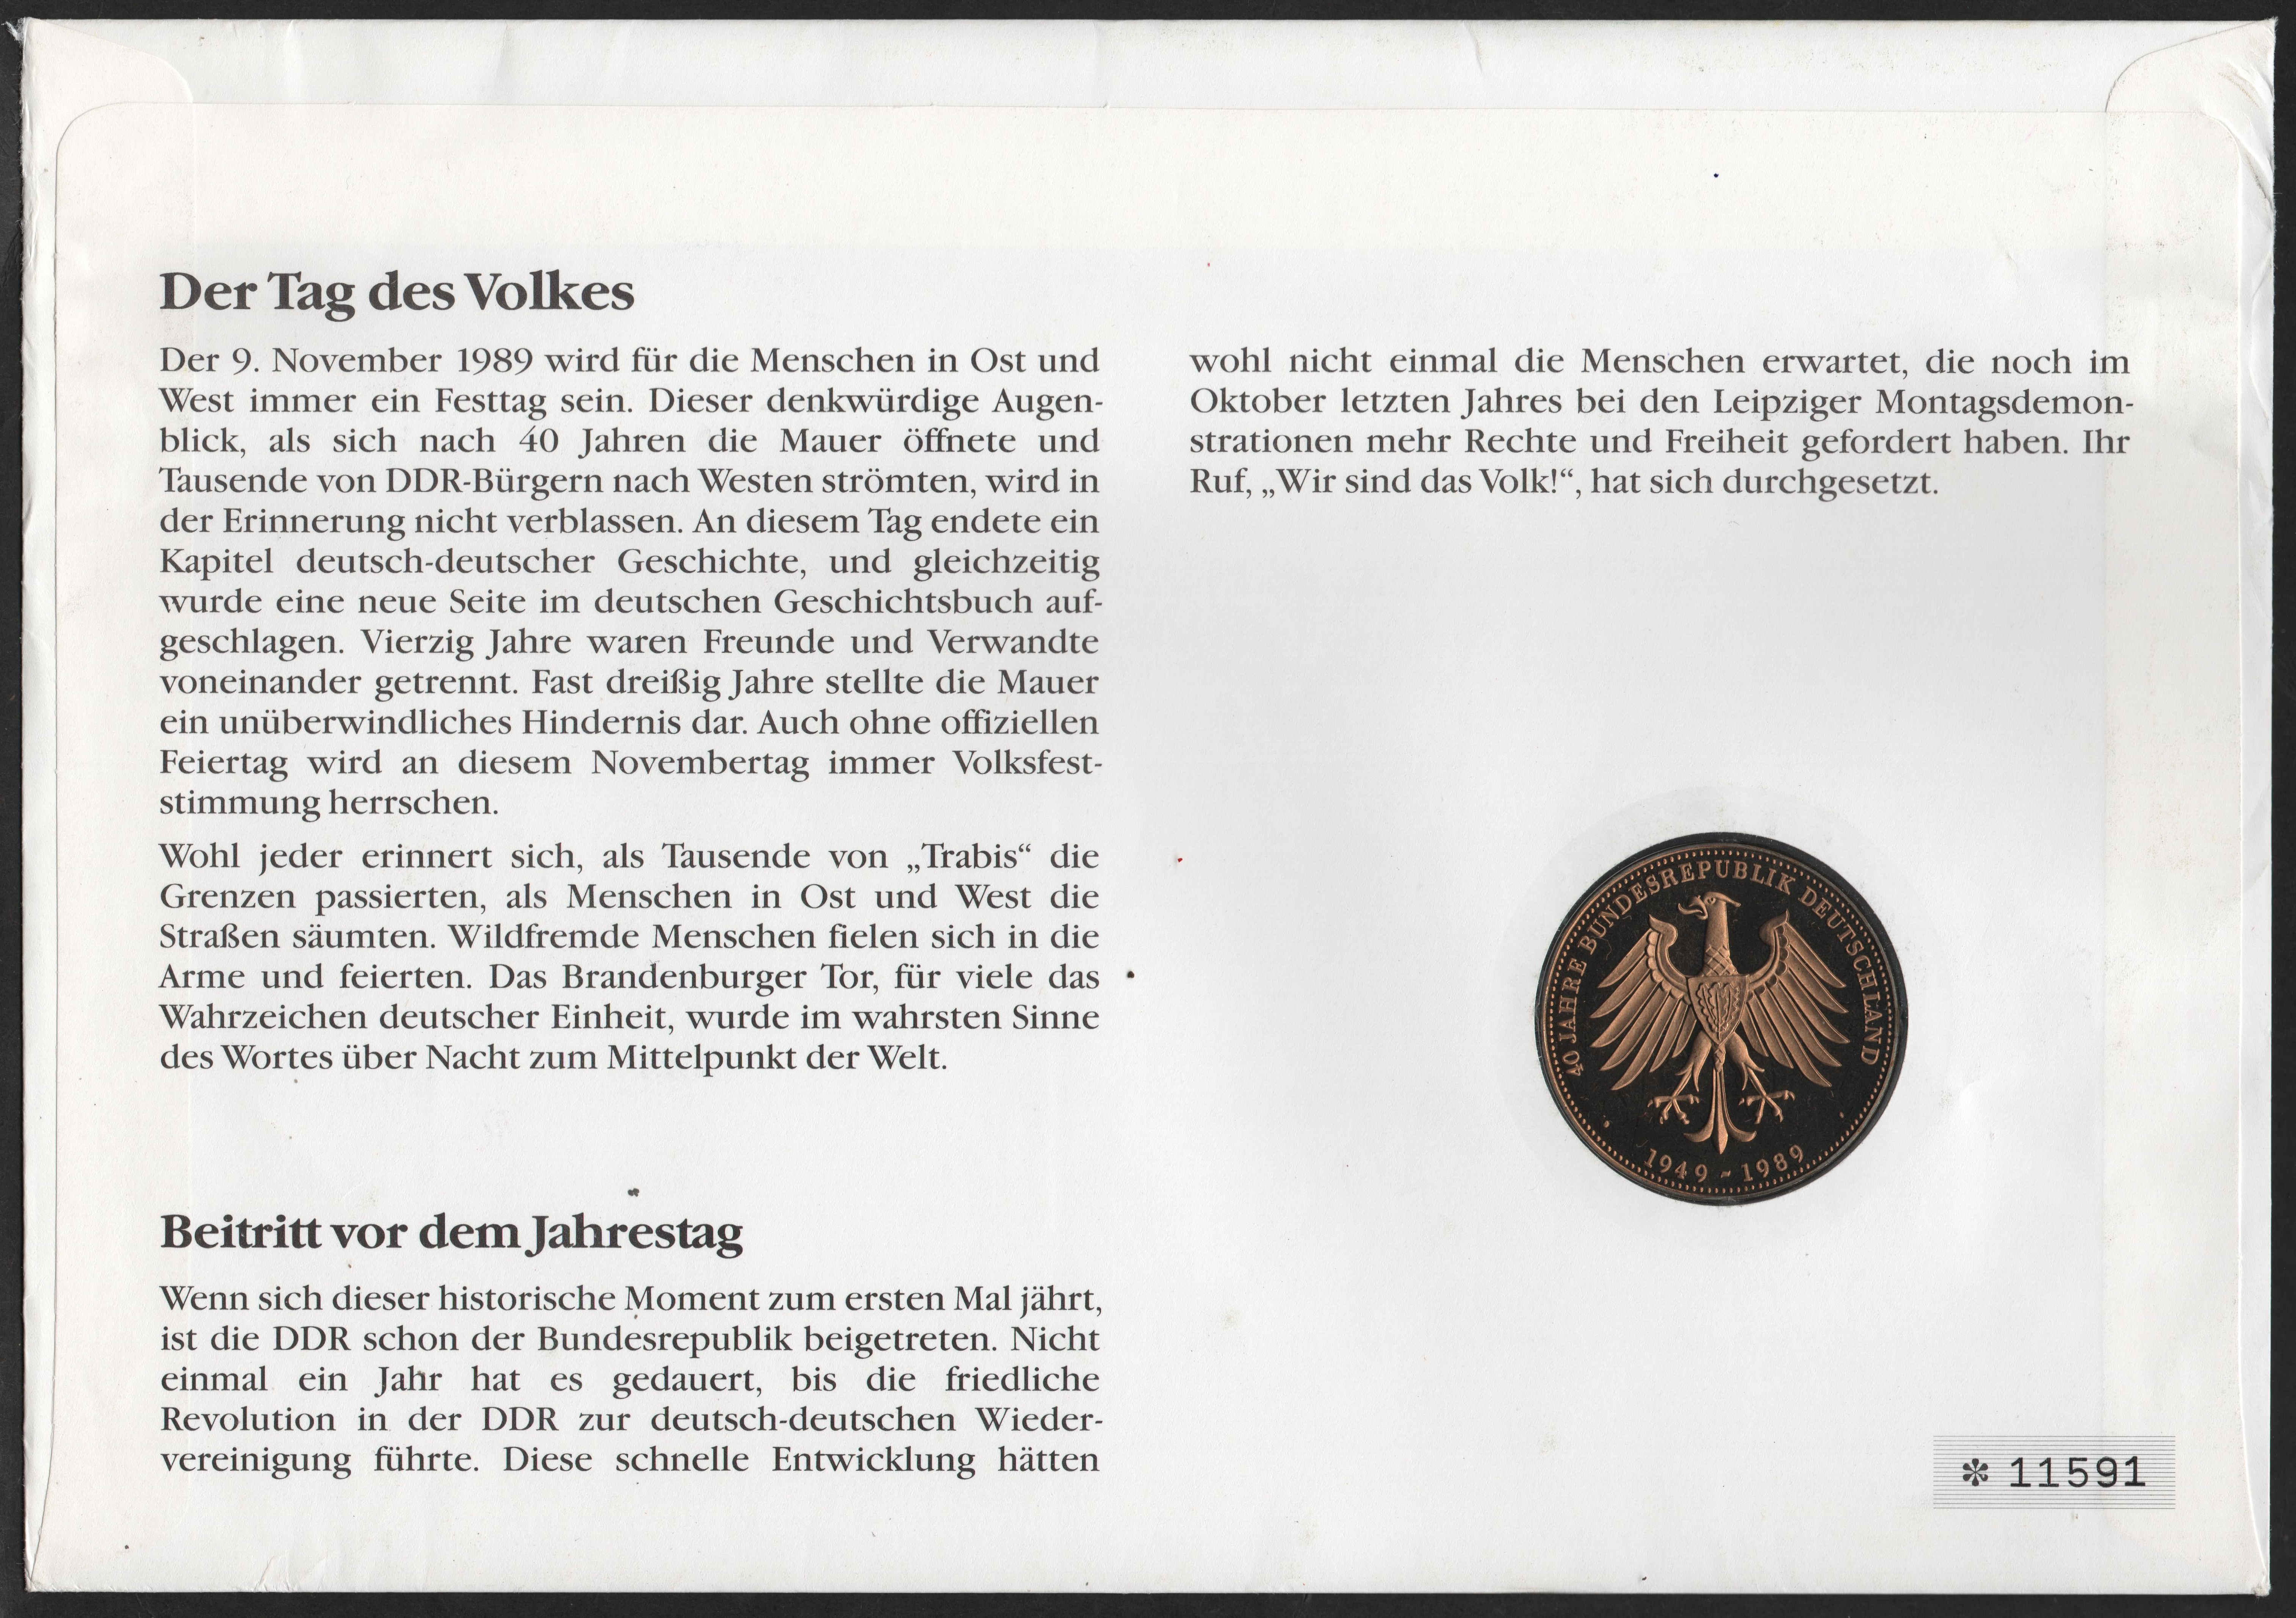 Germany - Scott #1617-1618 (1990) cover commemorating first anniversary of the fall of the Berlin Wall.